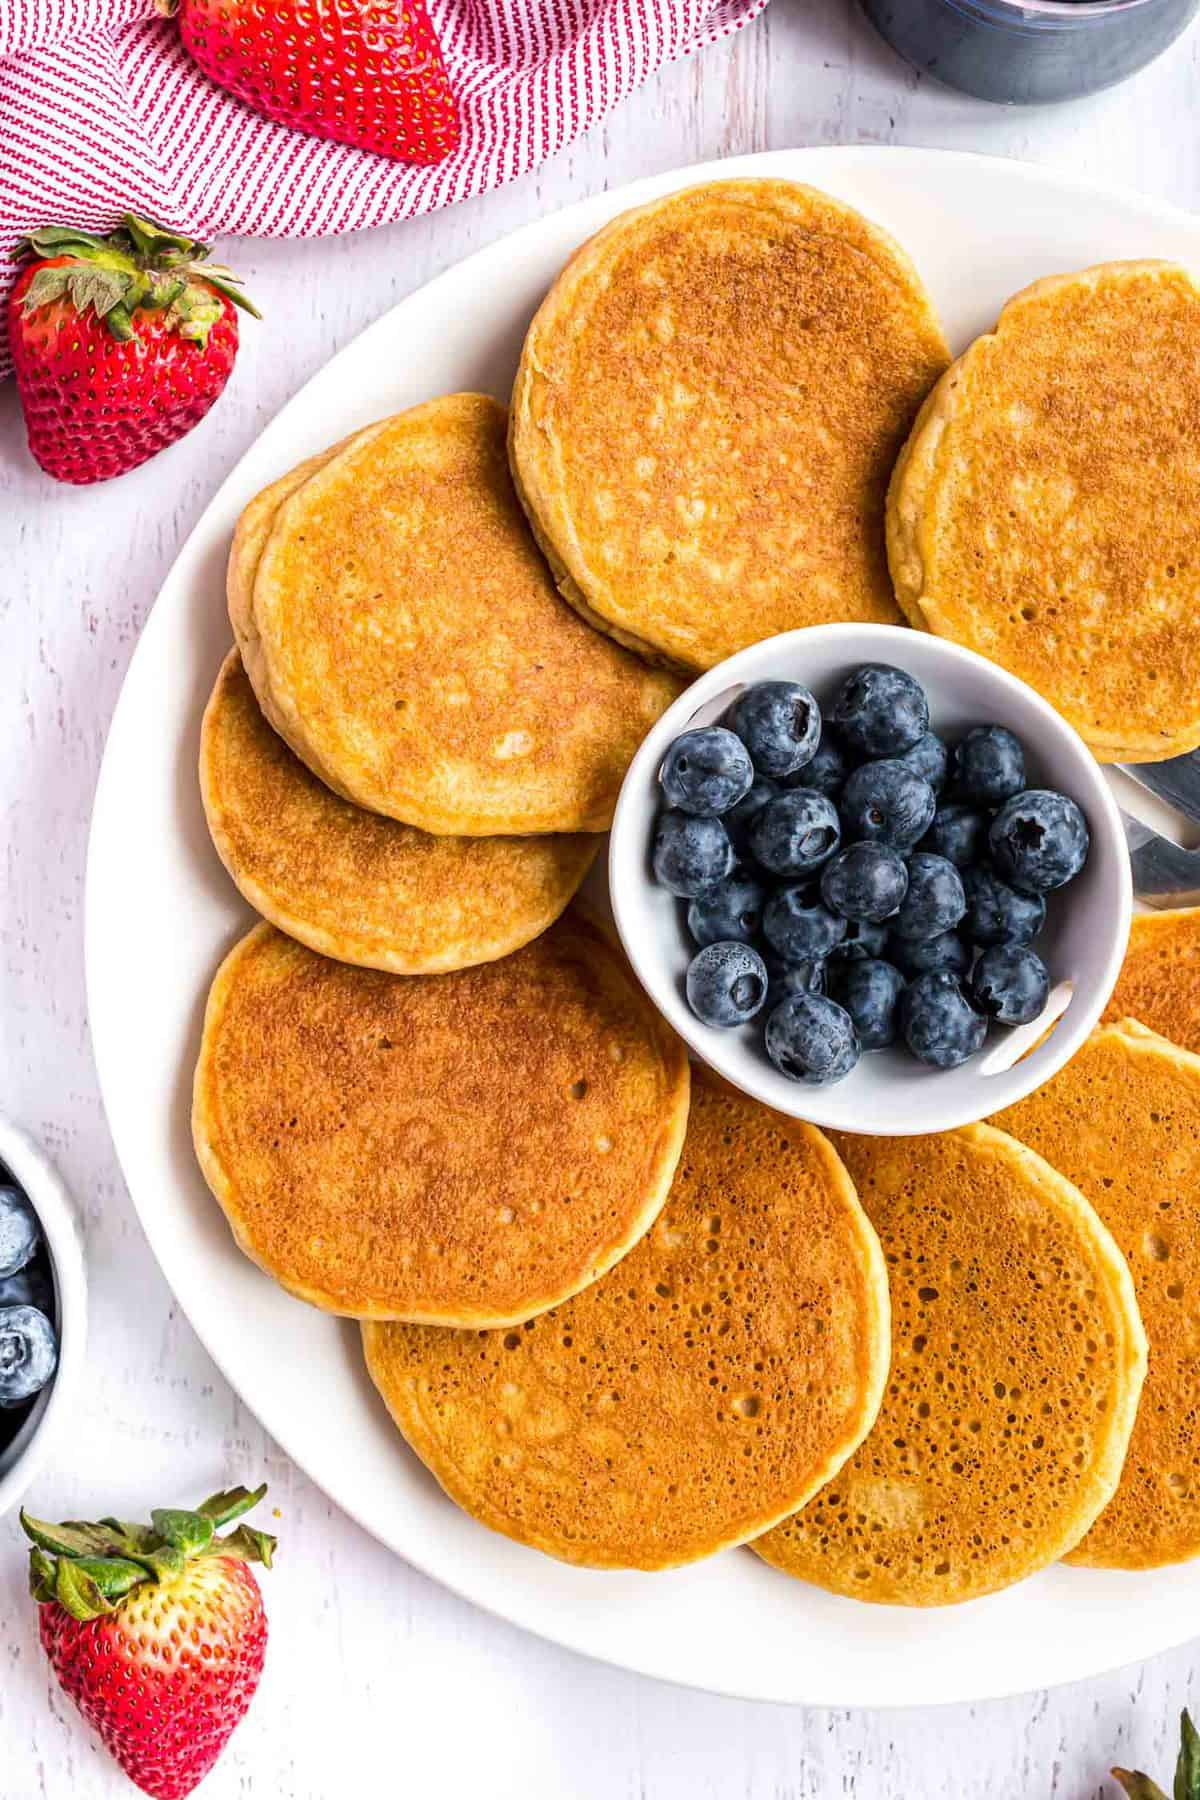 Overhead view of pancakes on a platter surrounding a bowl of blueberries.